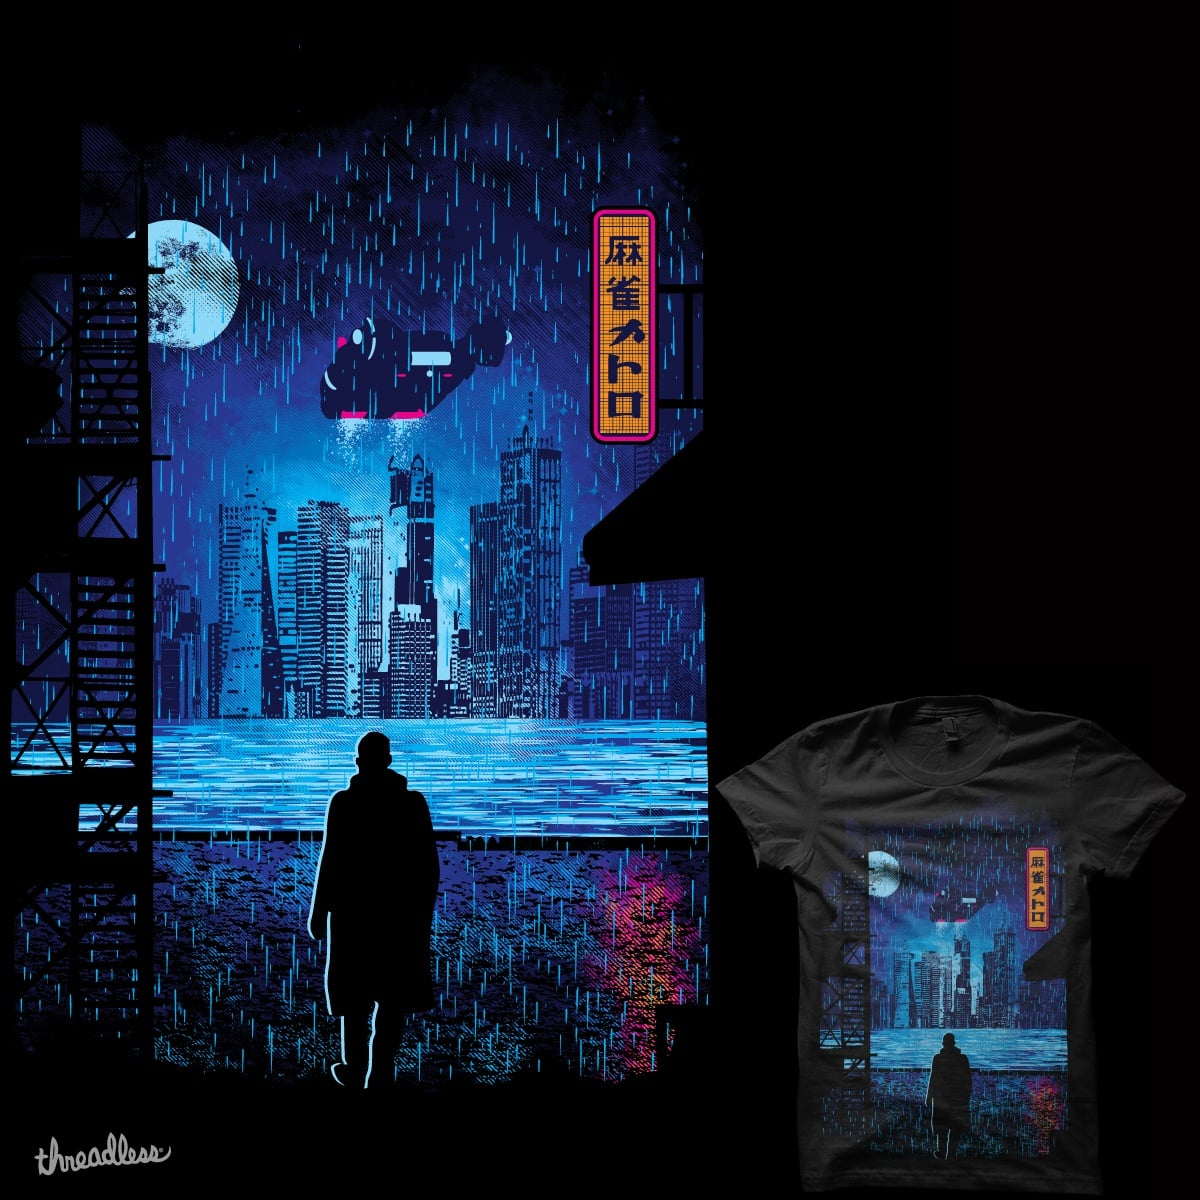 2049 by daletheskater on Threadless